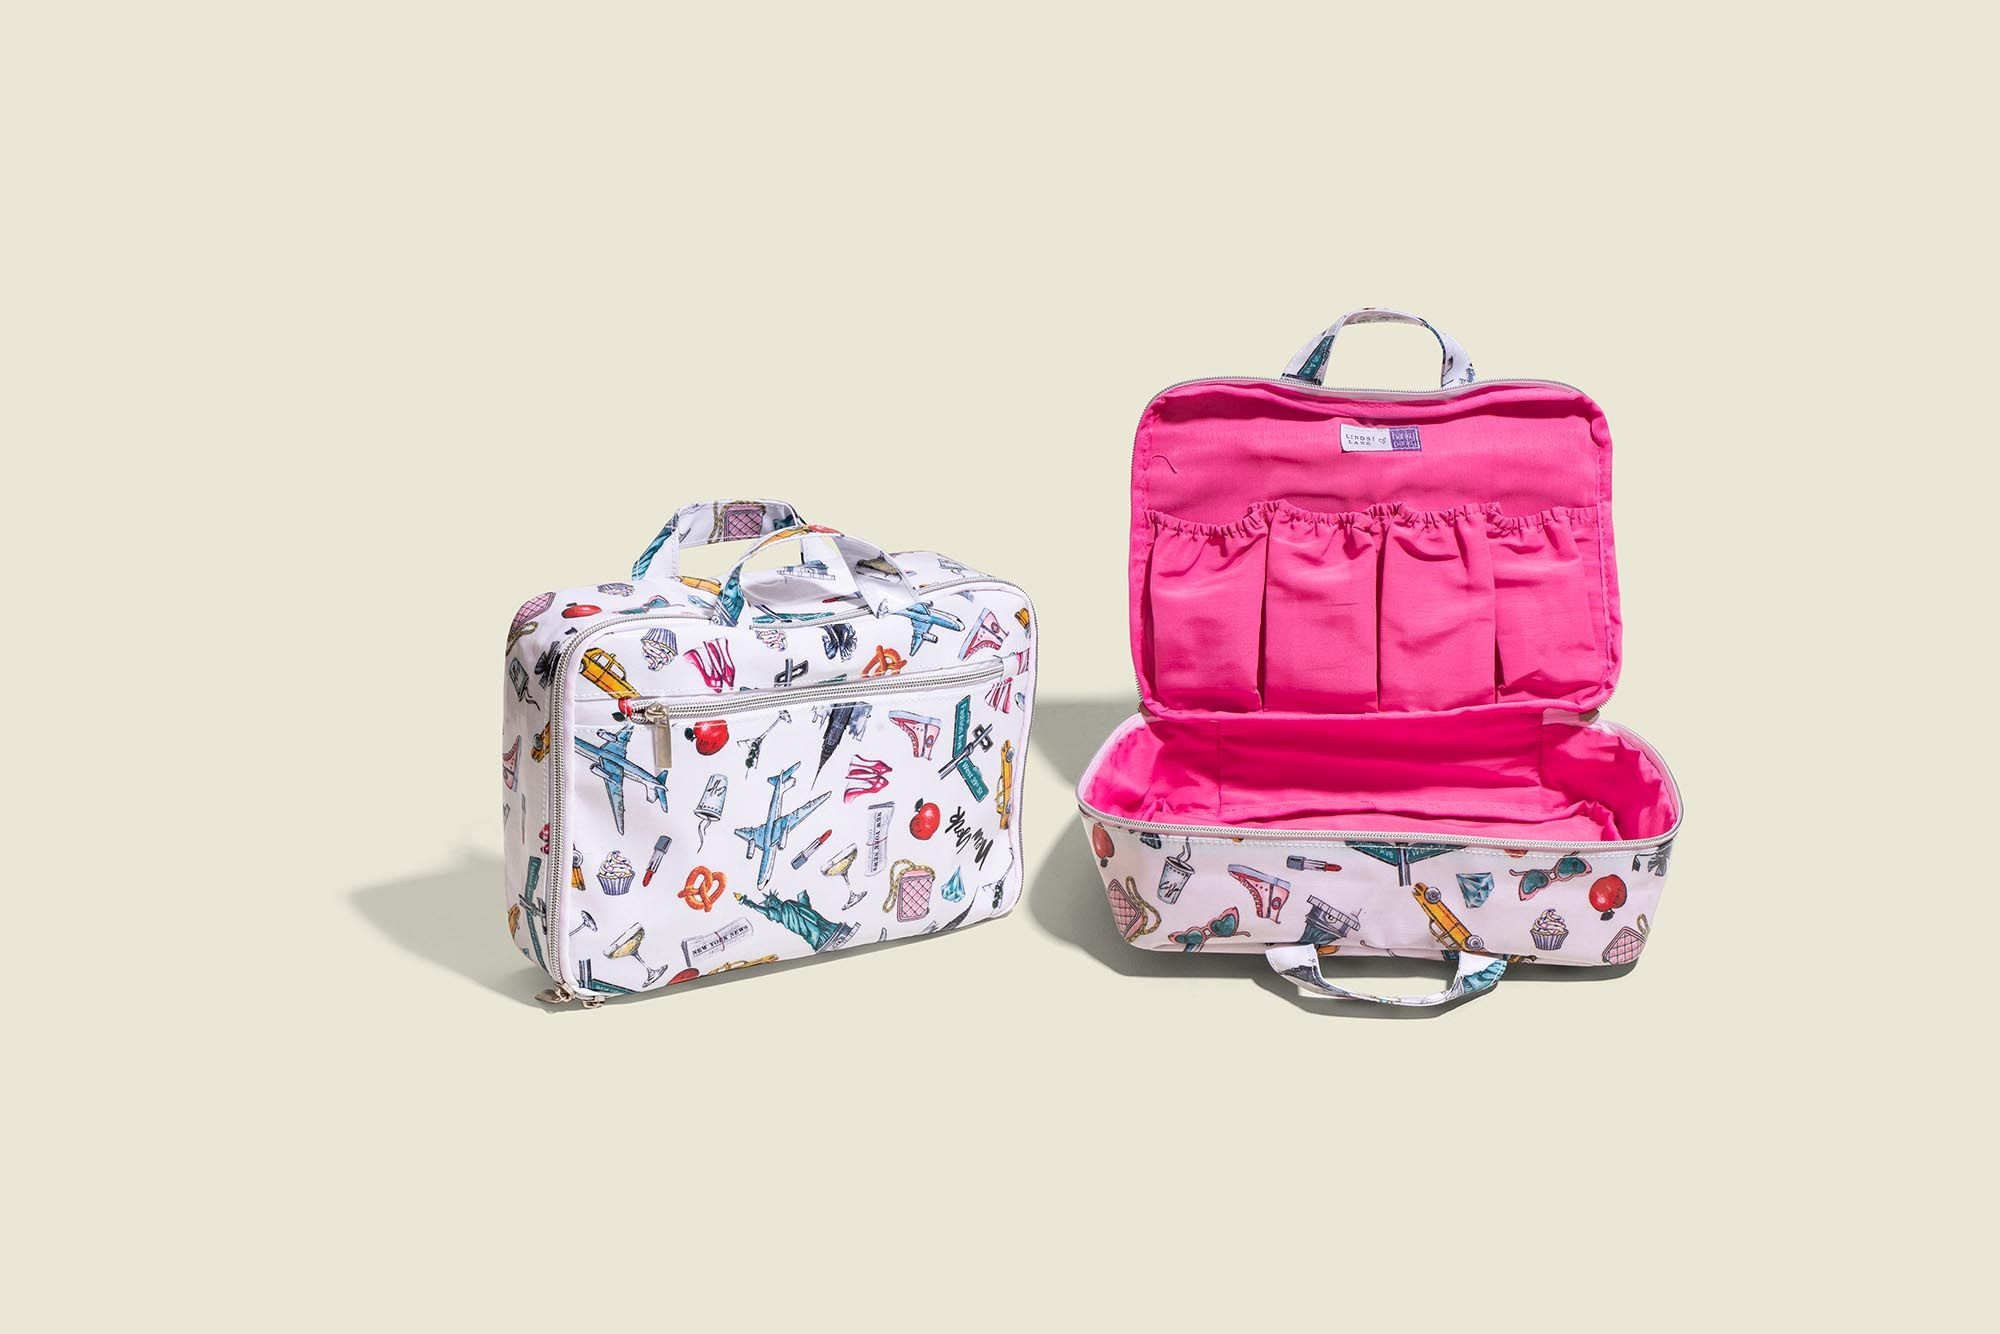 Colorful zip pouches with pockets